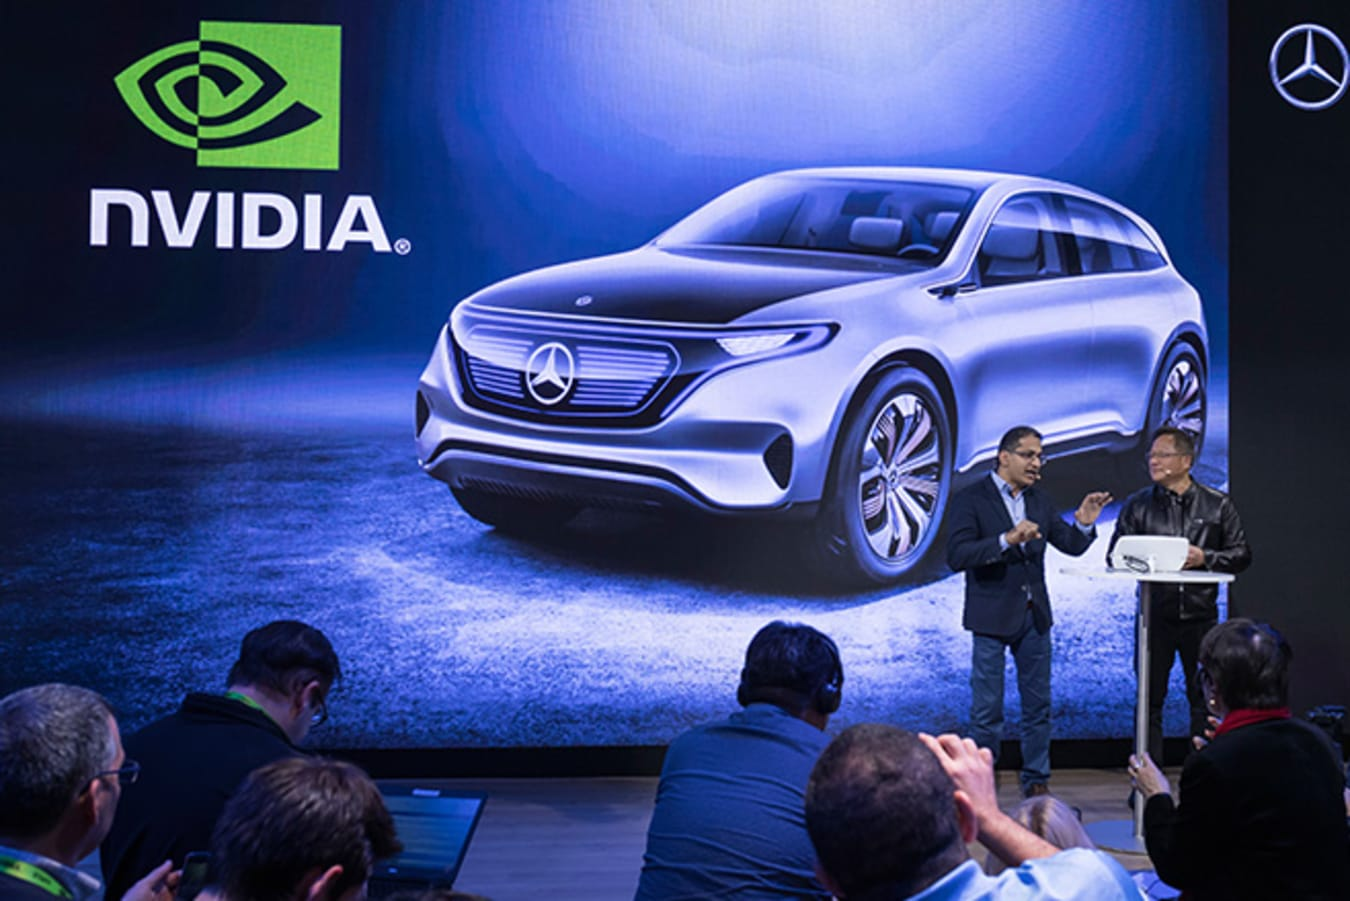 Nvidia Technology in Mercedes-Benz SUV